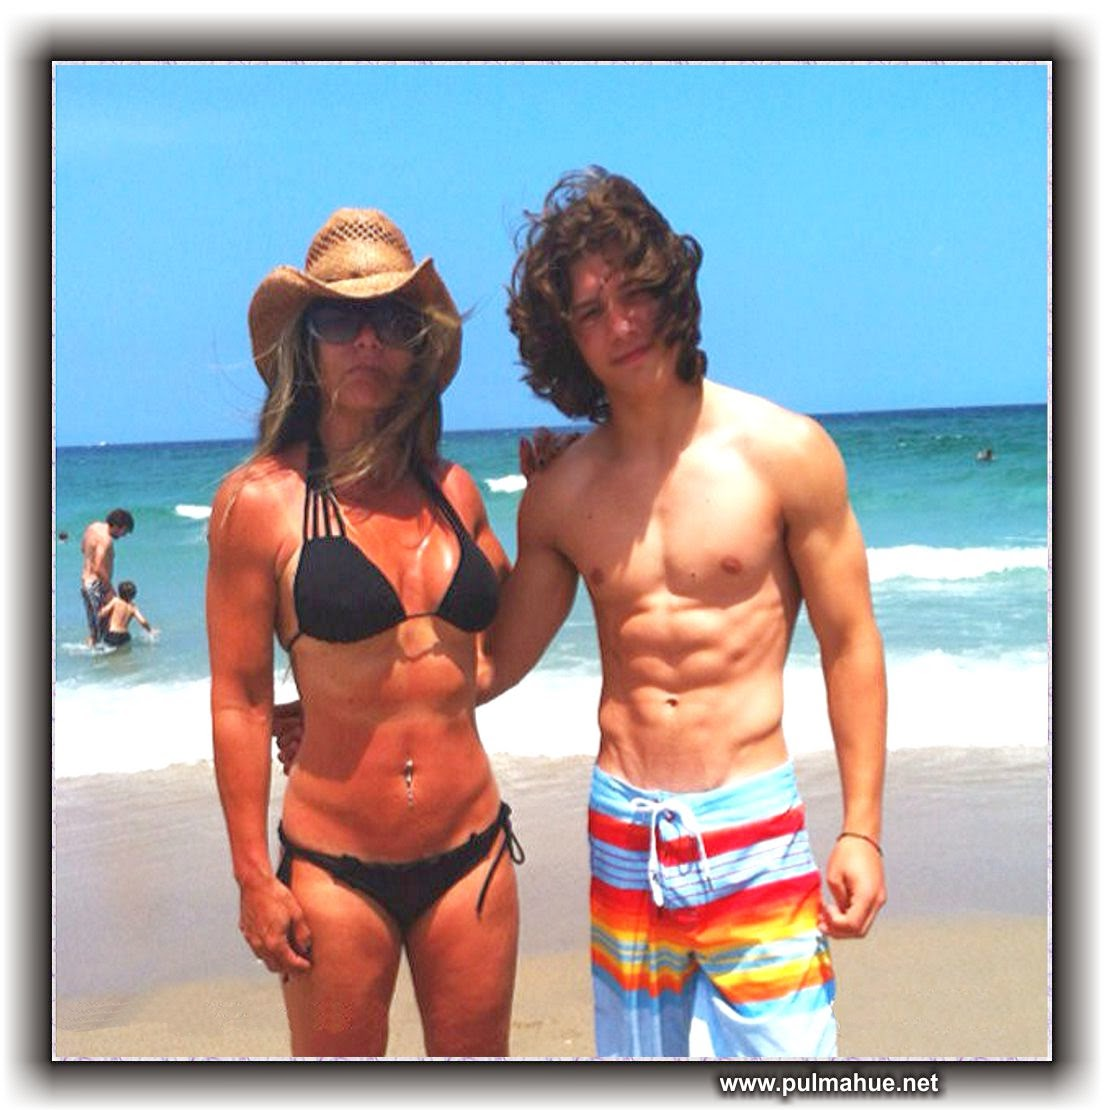 Related to leo howard and olivia holt dating ? - YouTube